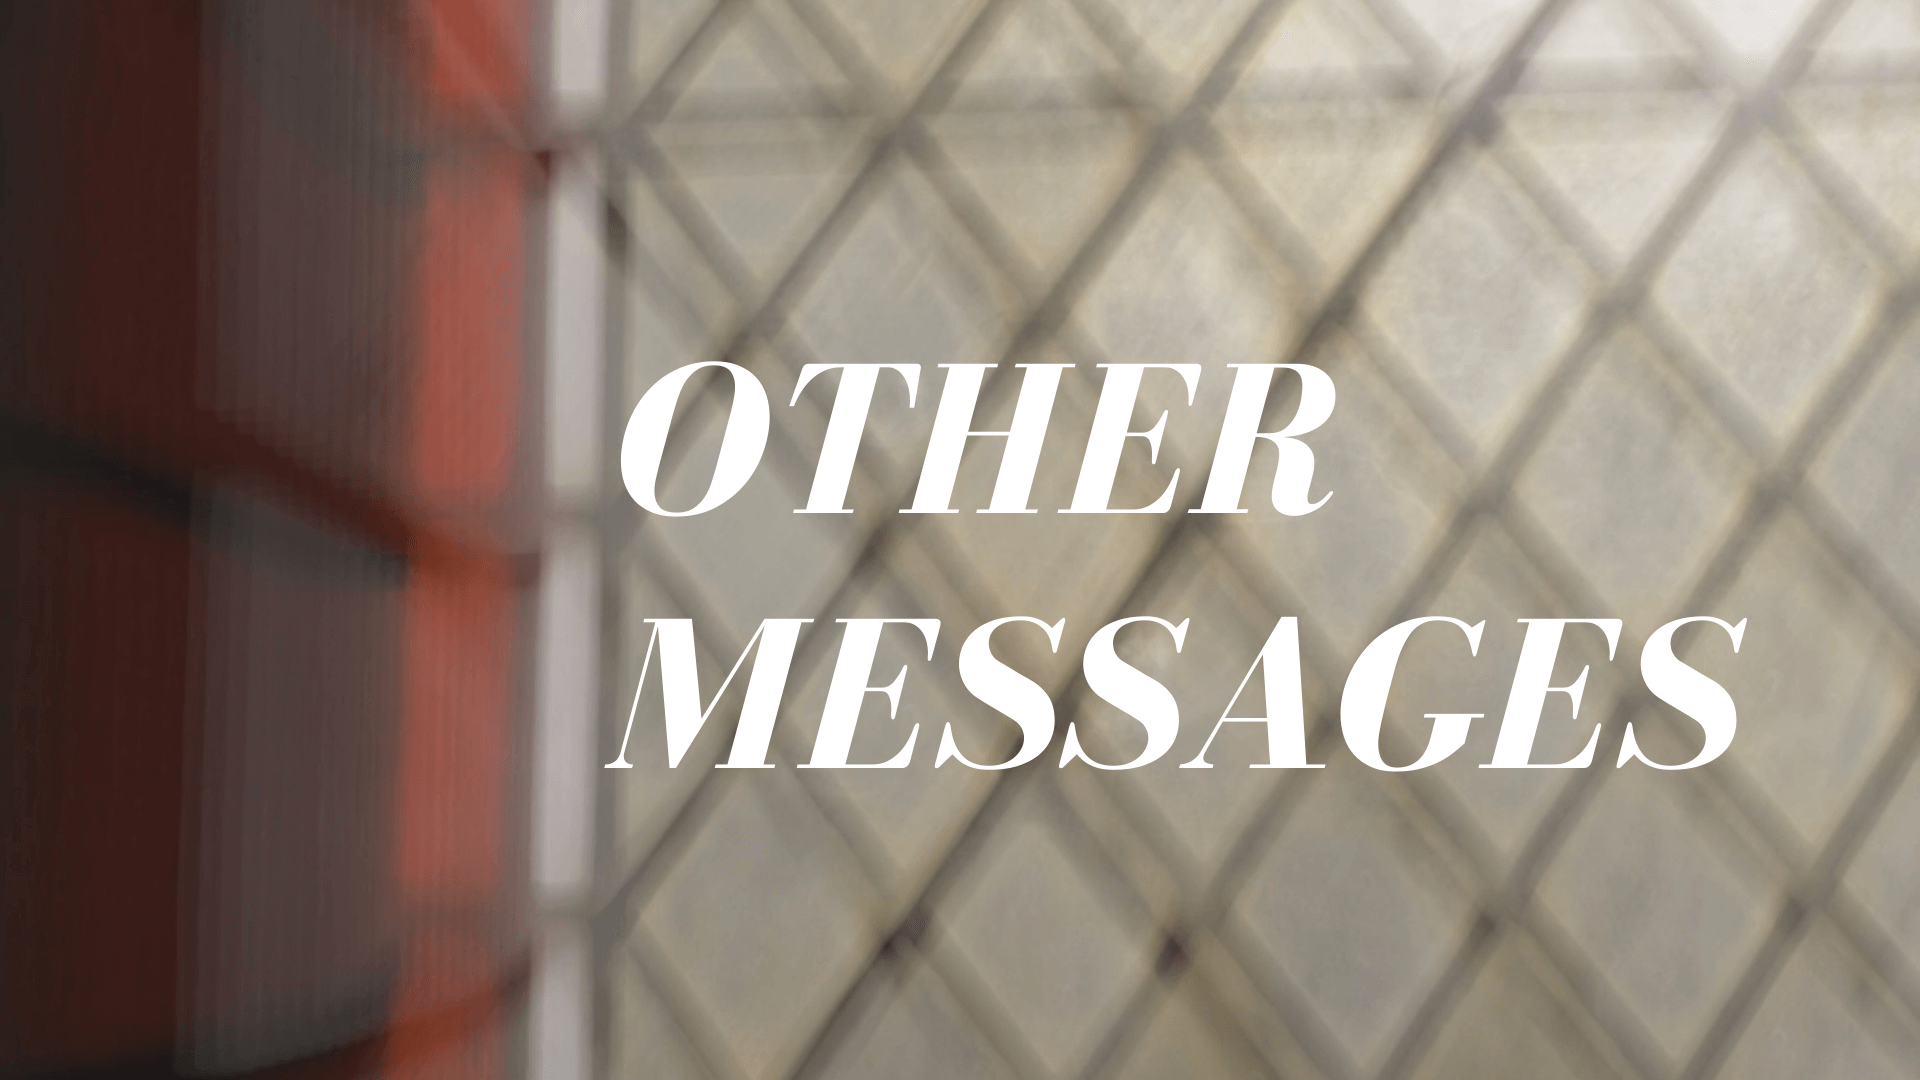 Other messages